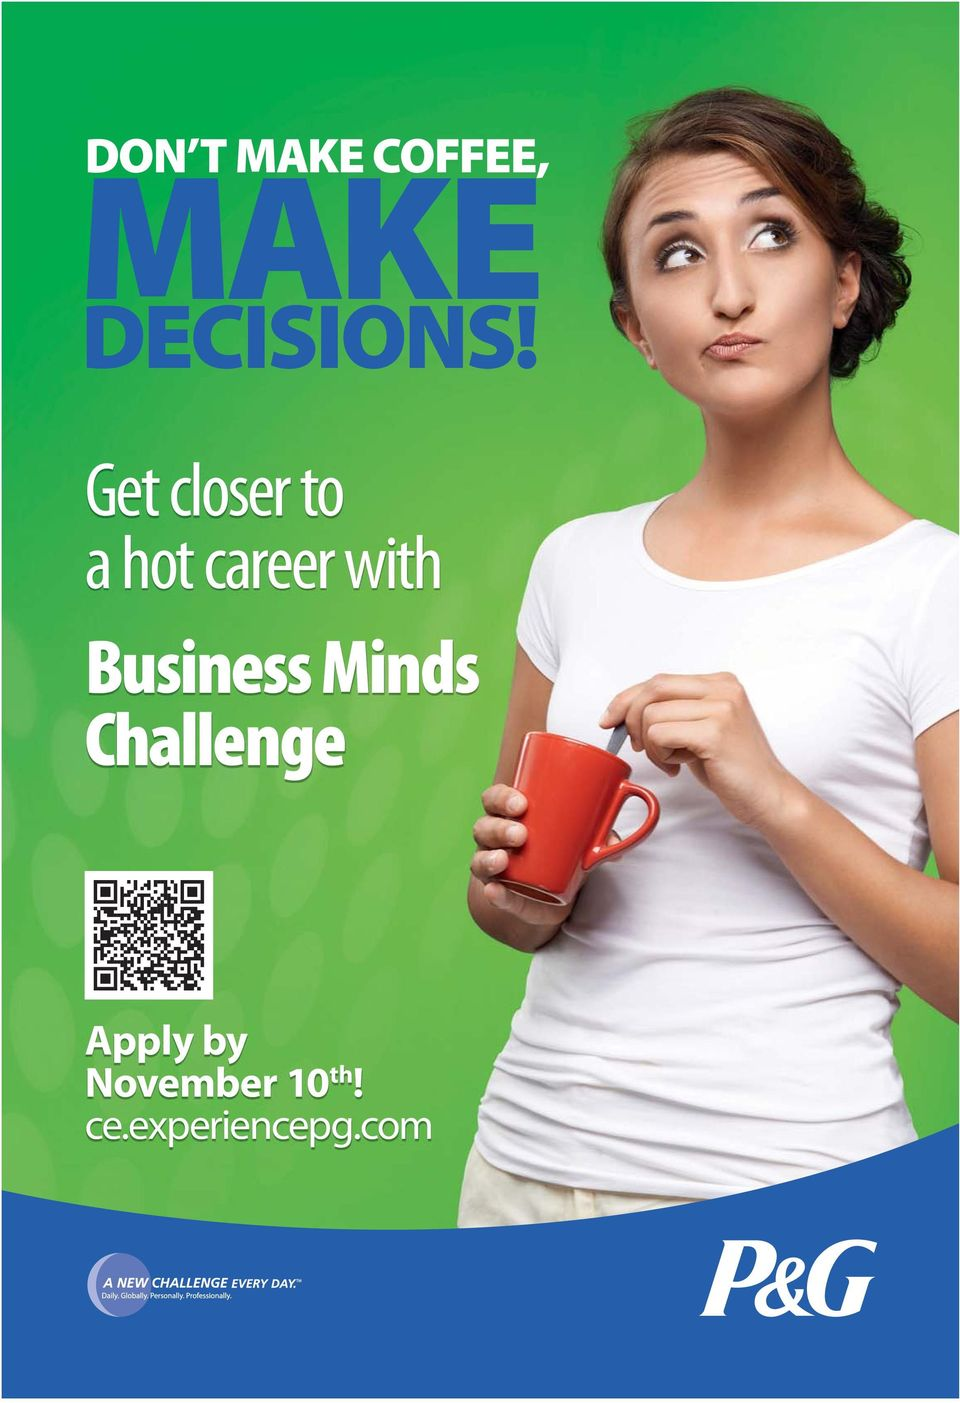 Business Minds Challenge Apply by